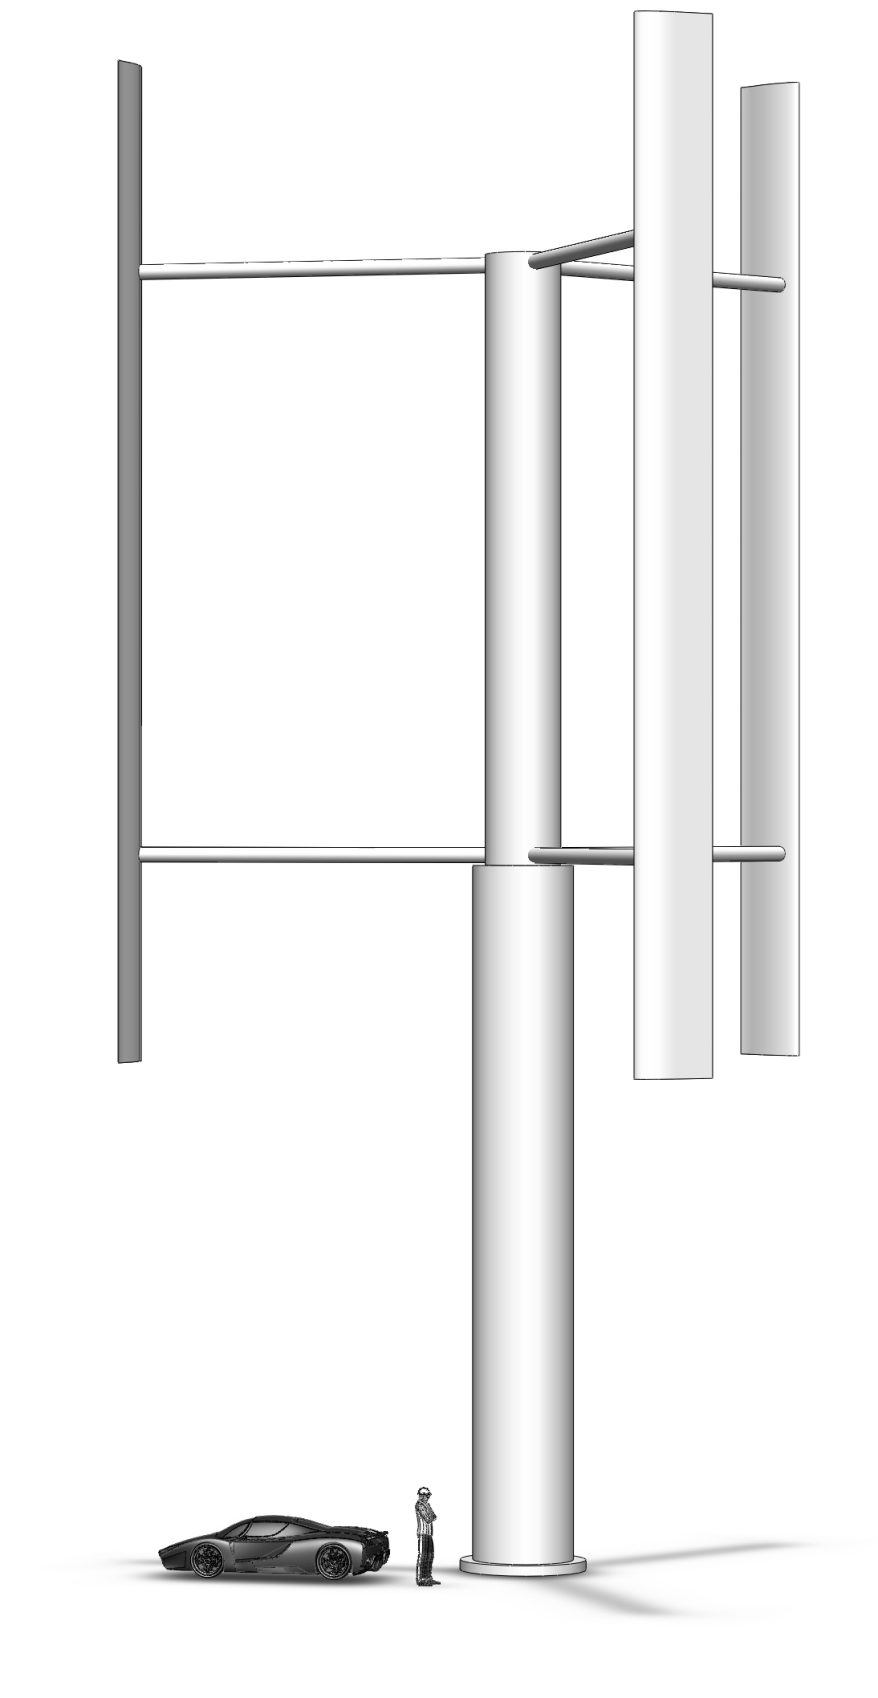 Design of a Vertical Axis Wind Turbine Phase II - PDF